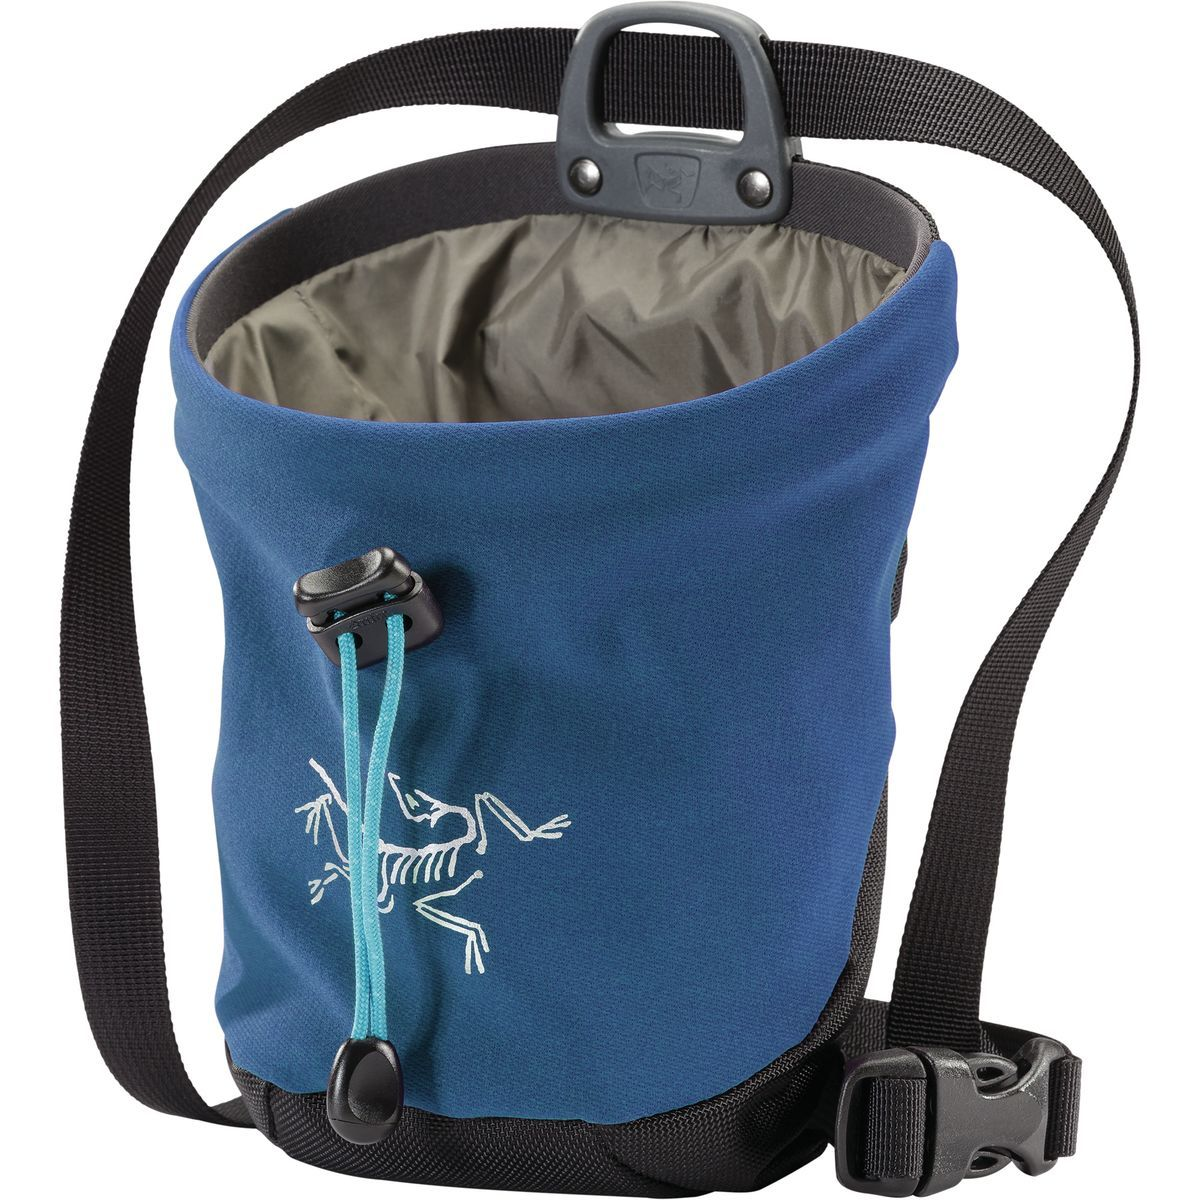 ArcTeryx C40 Chalk Bag, in blue colour